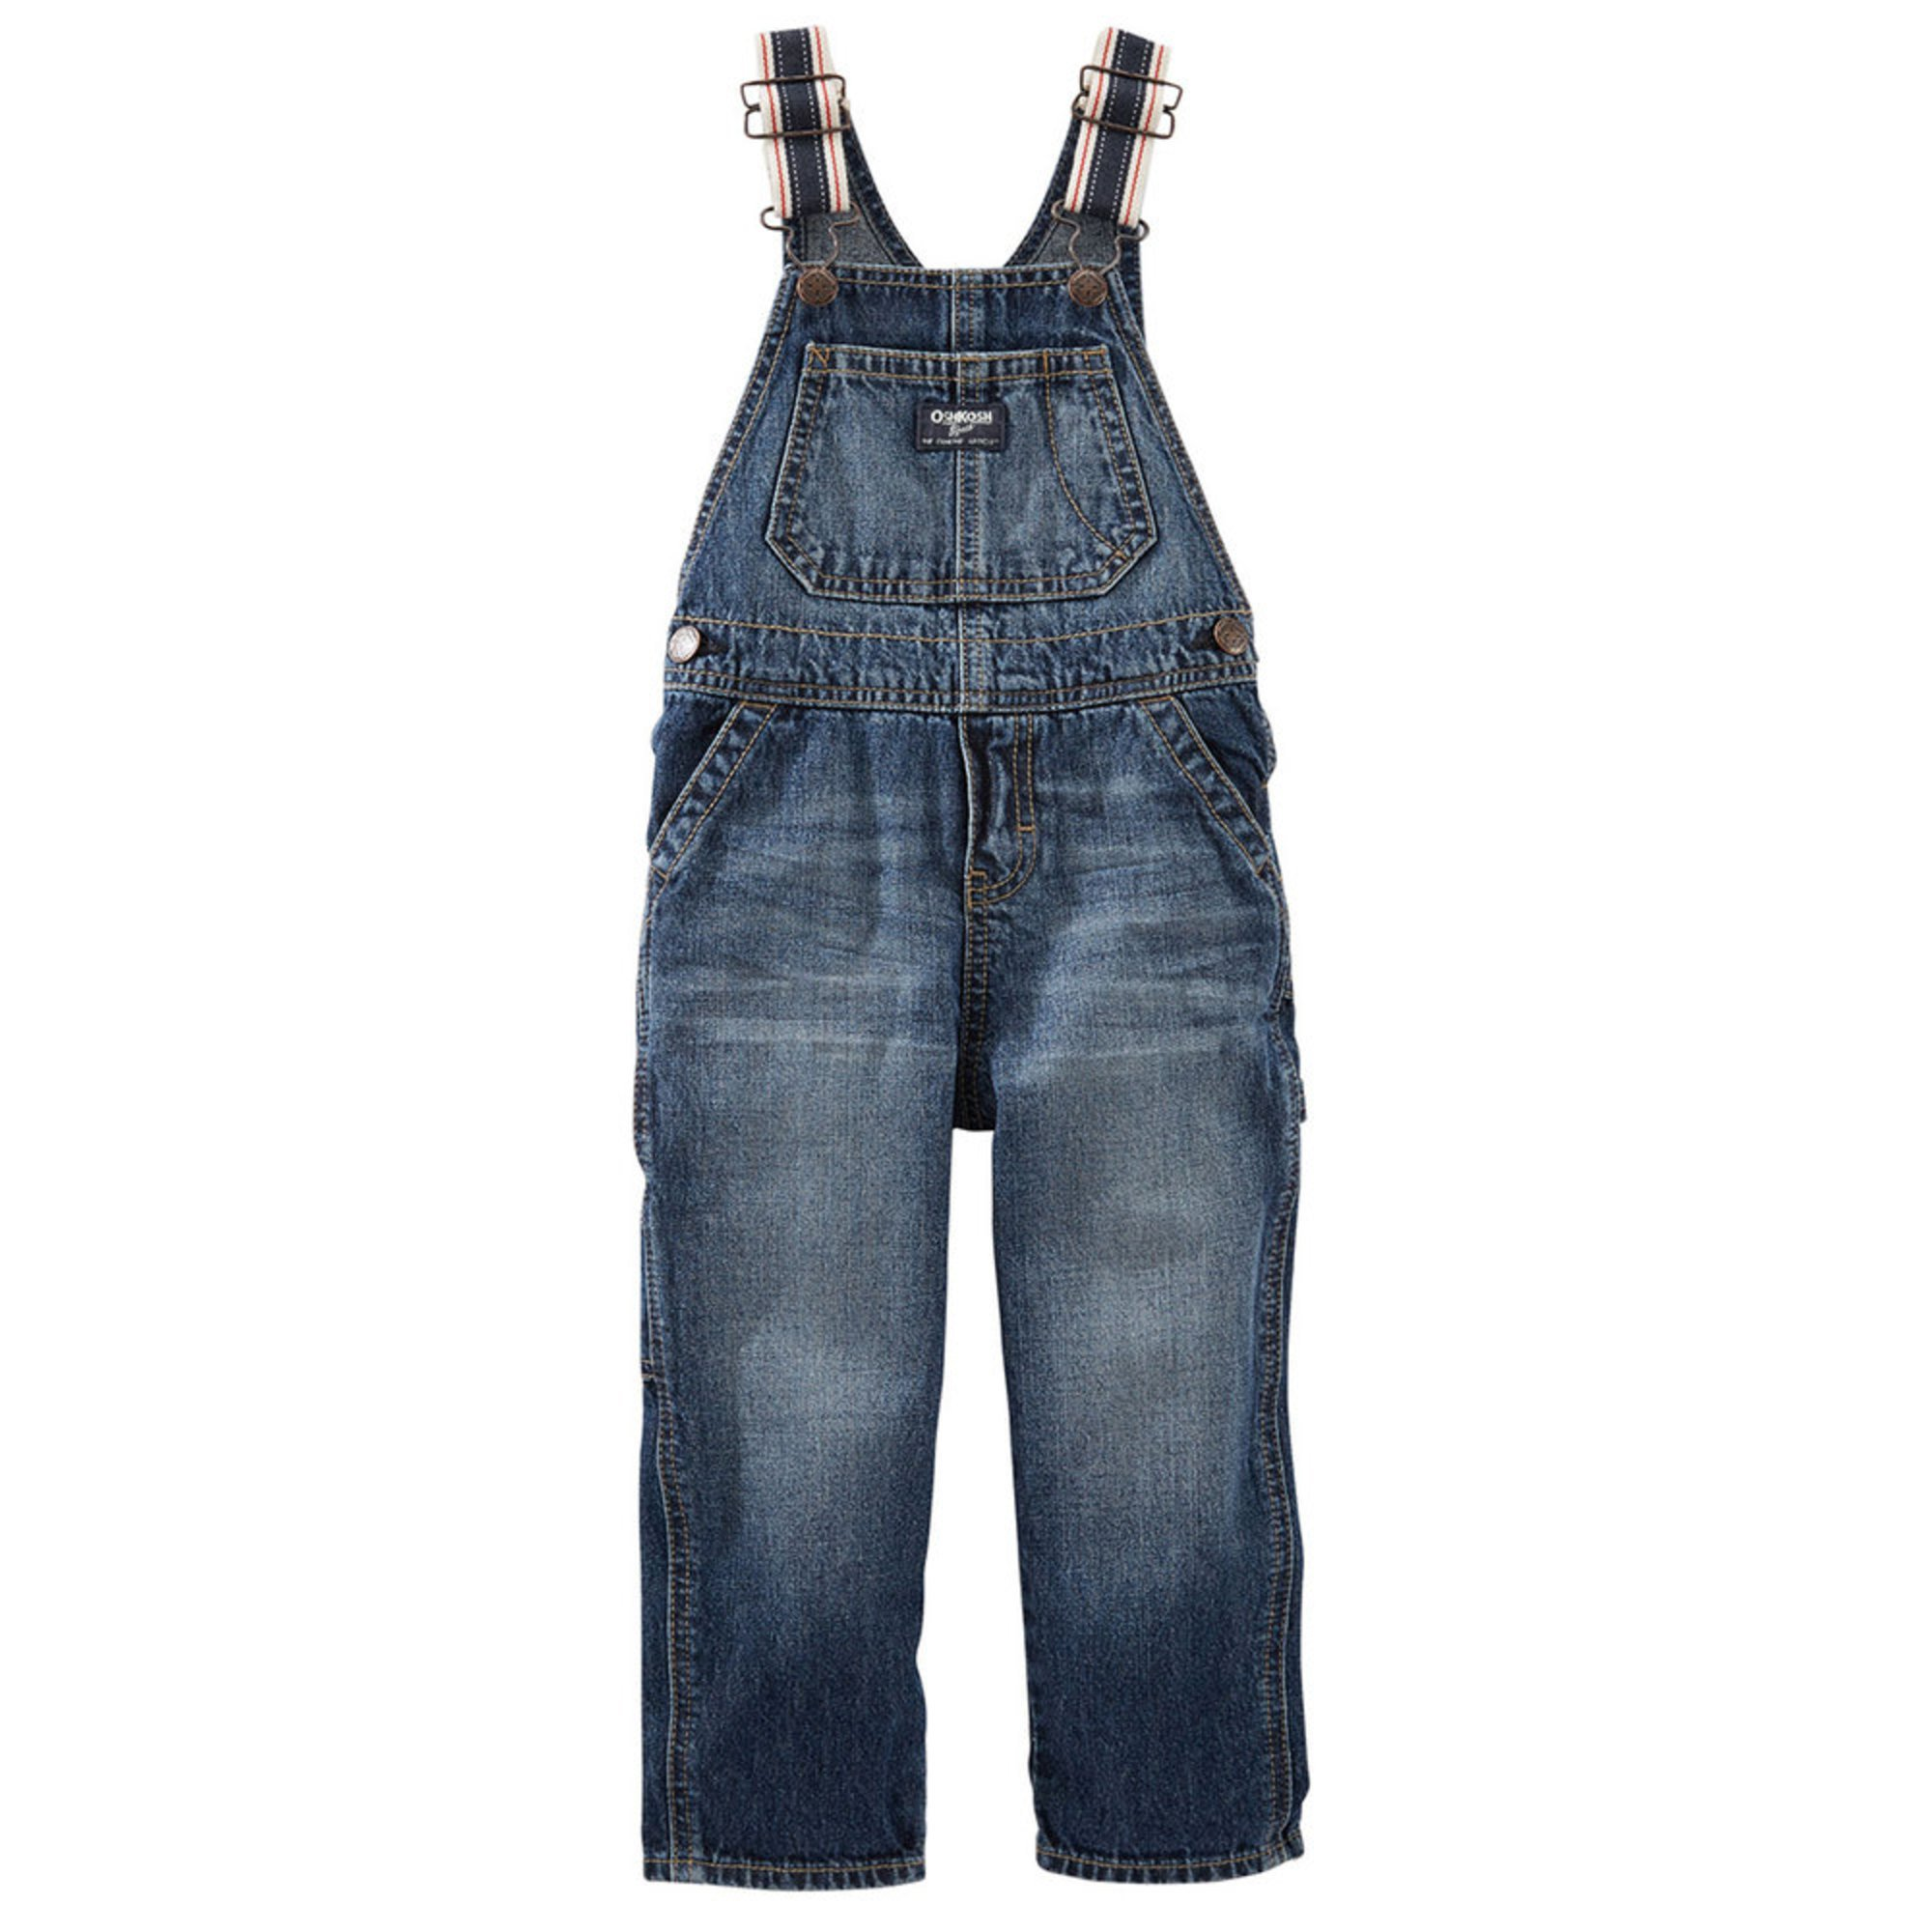 Shop baby boy best overalls at softhome24.ml Shop OshKosh B'gosh, the most trusted name in kids and baby clothes, plus our world famous overalls.